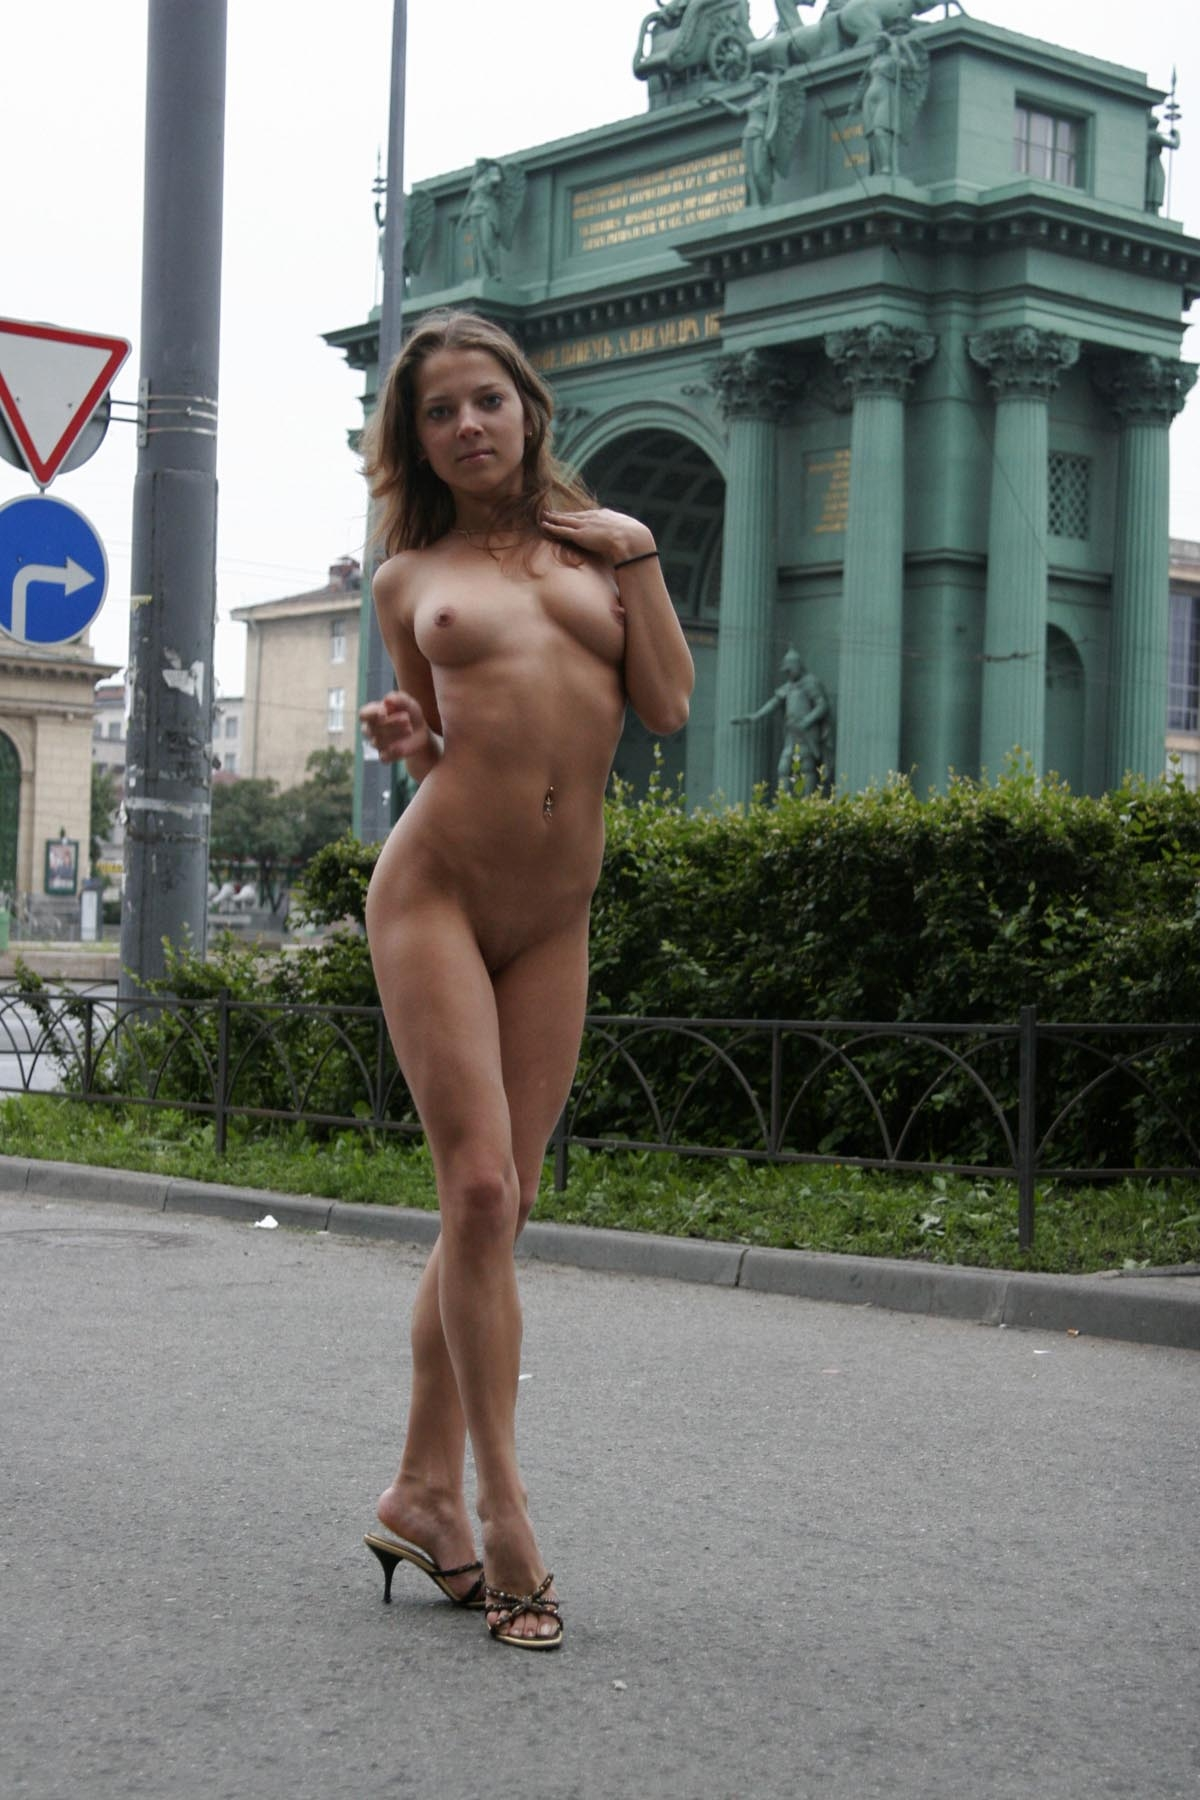 nudes in st petersburg